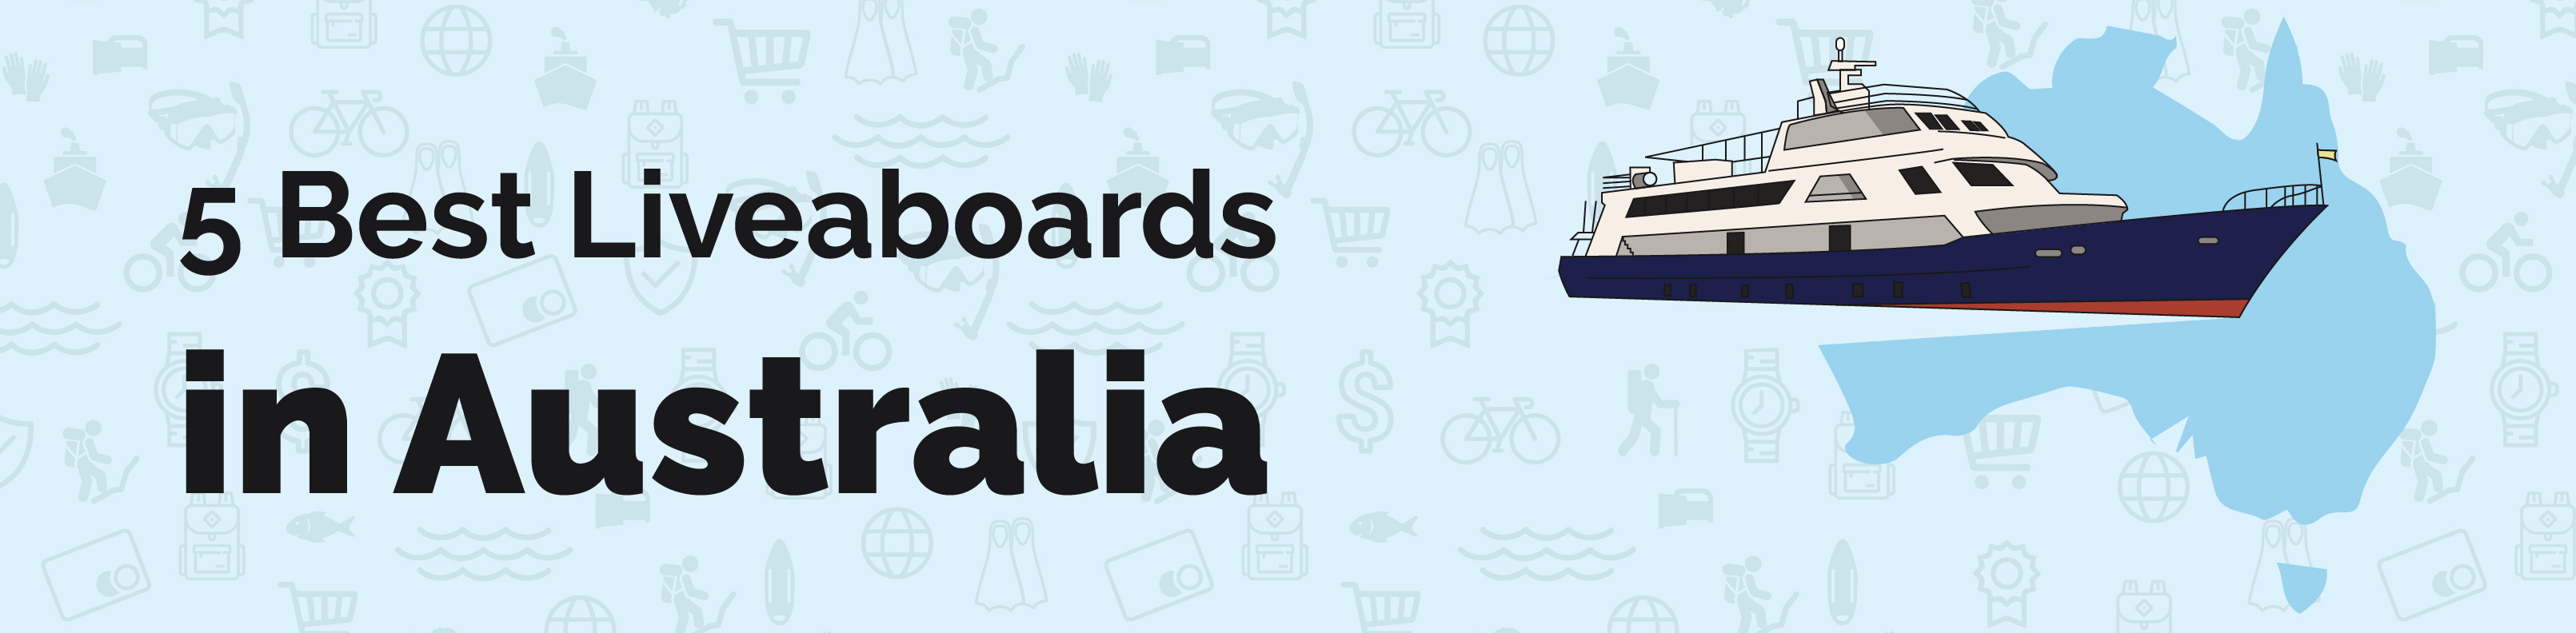 australian liveaboard reviews banner